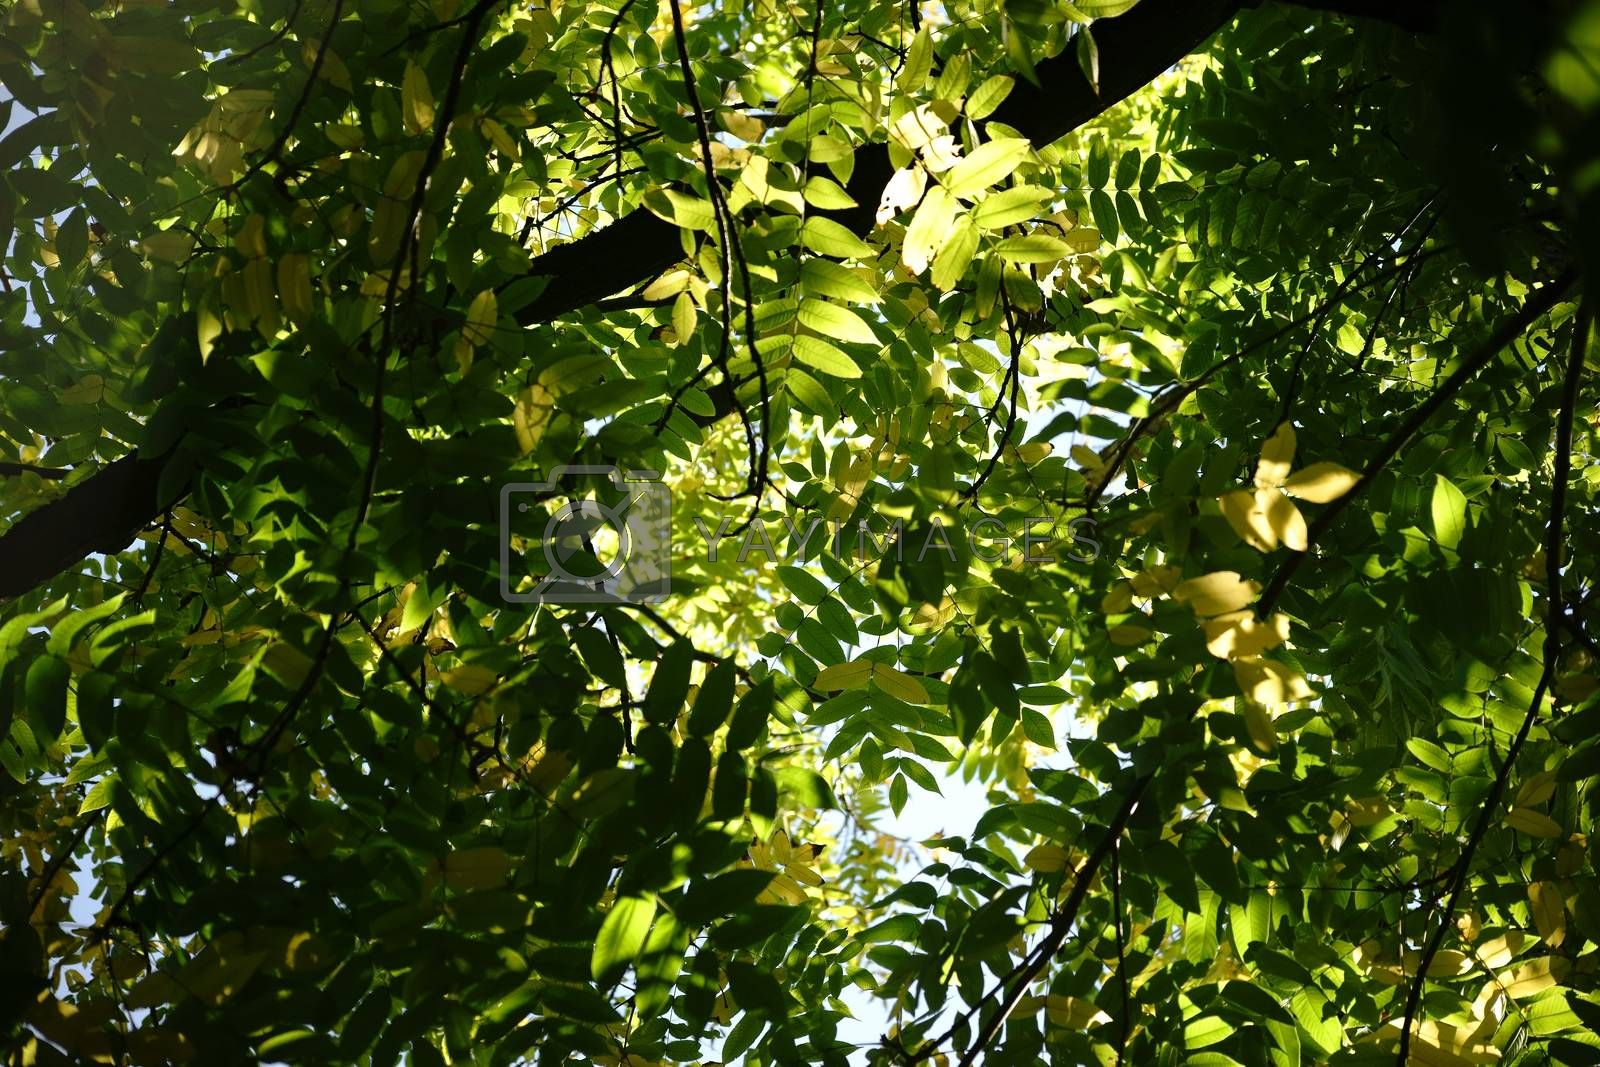 The canopy and the treetop of a nut tree, Juglans cinerea.